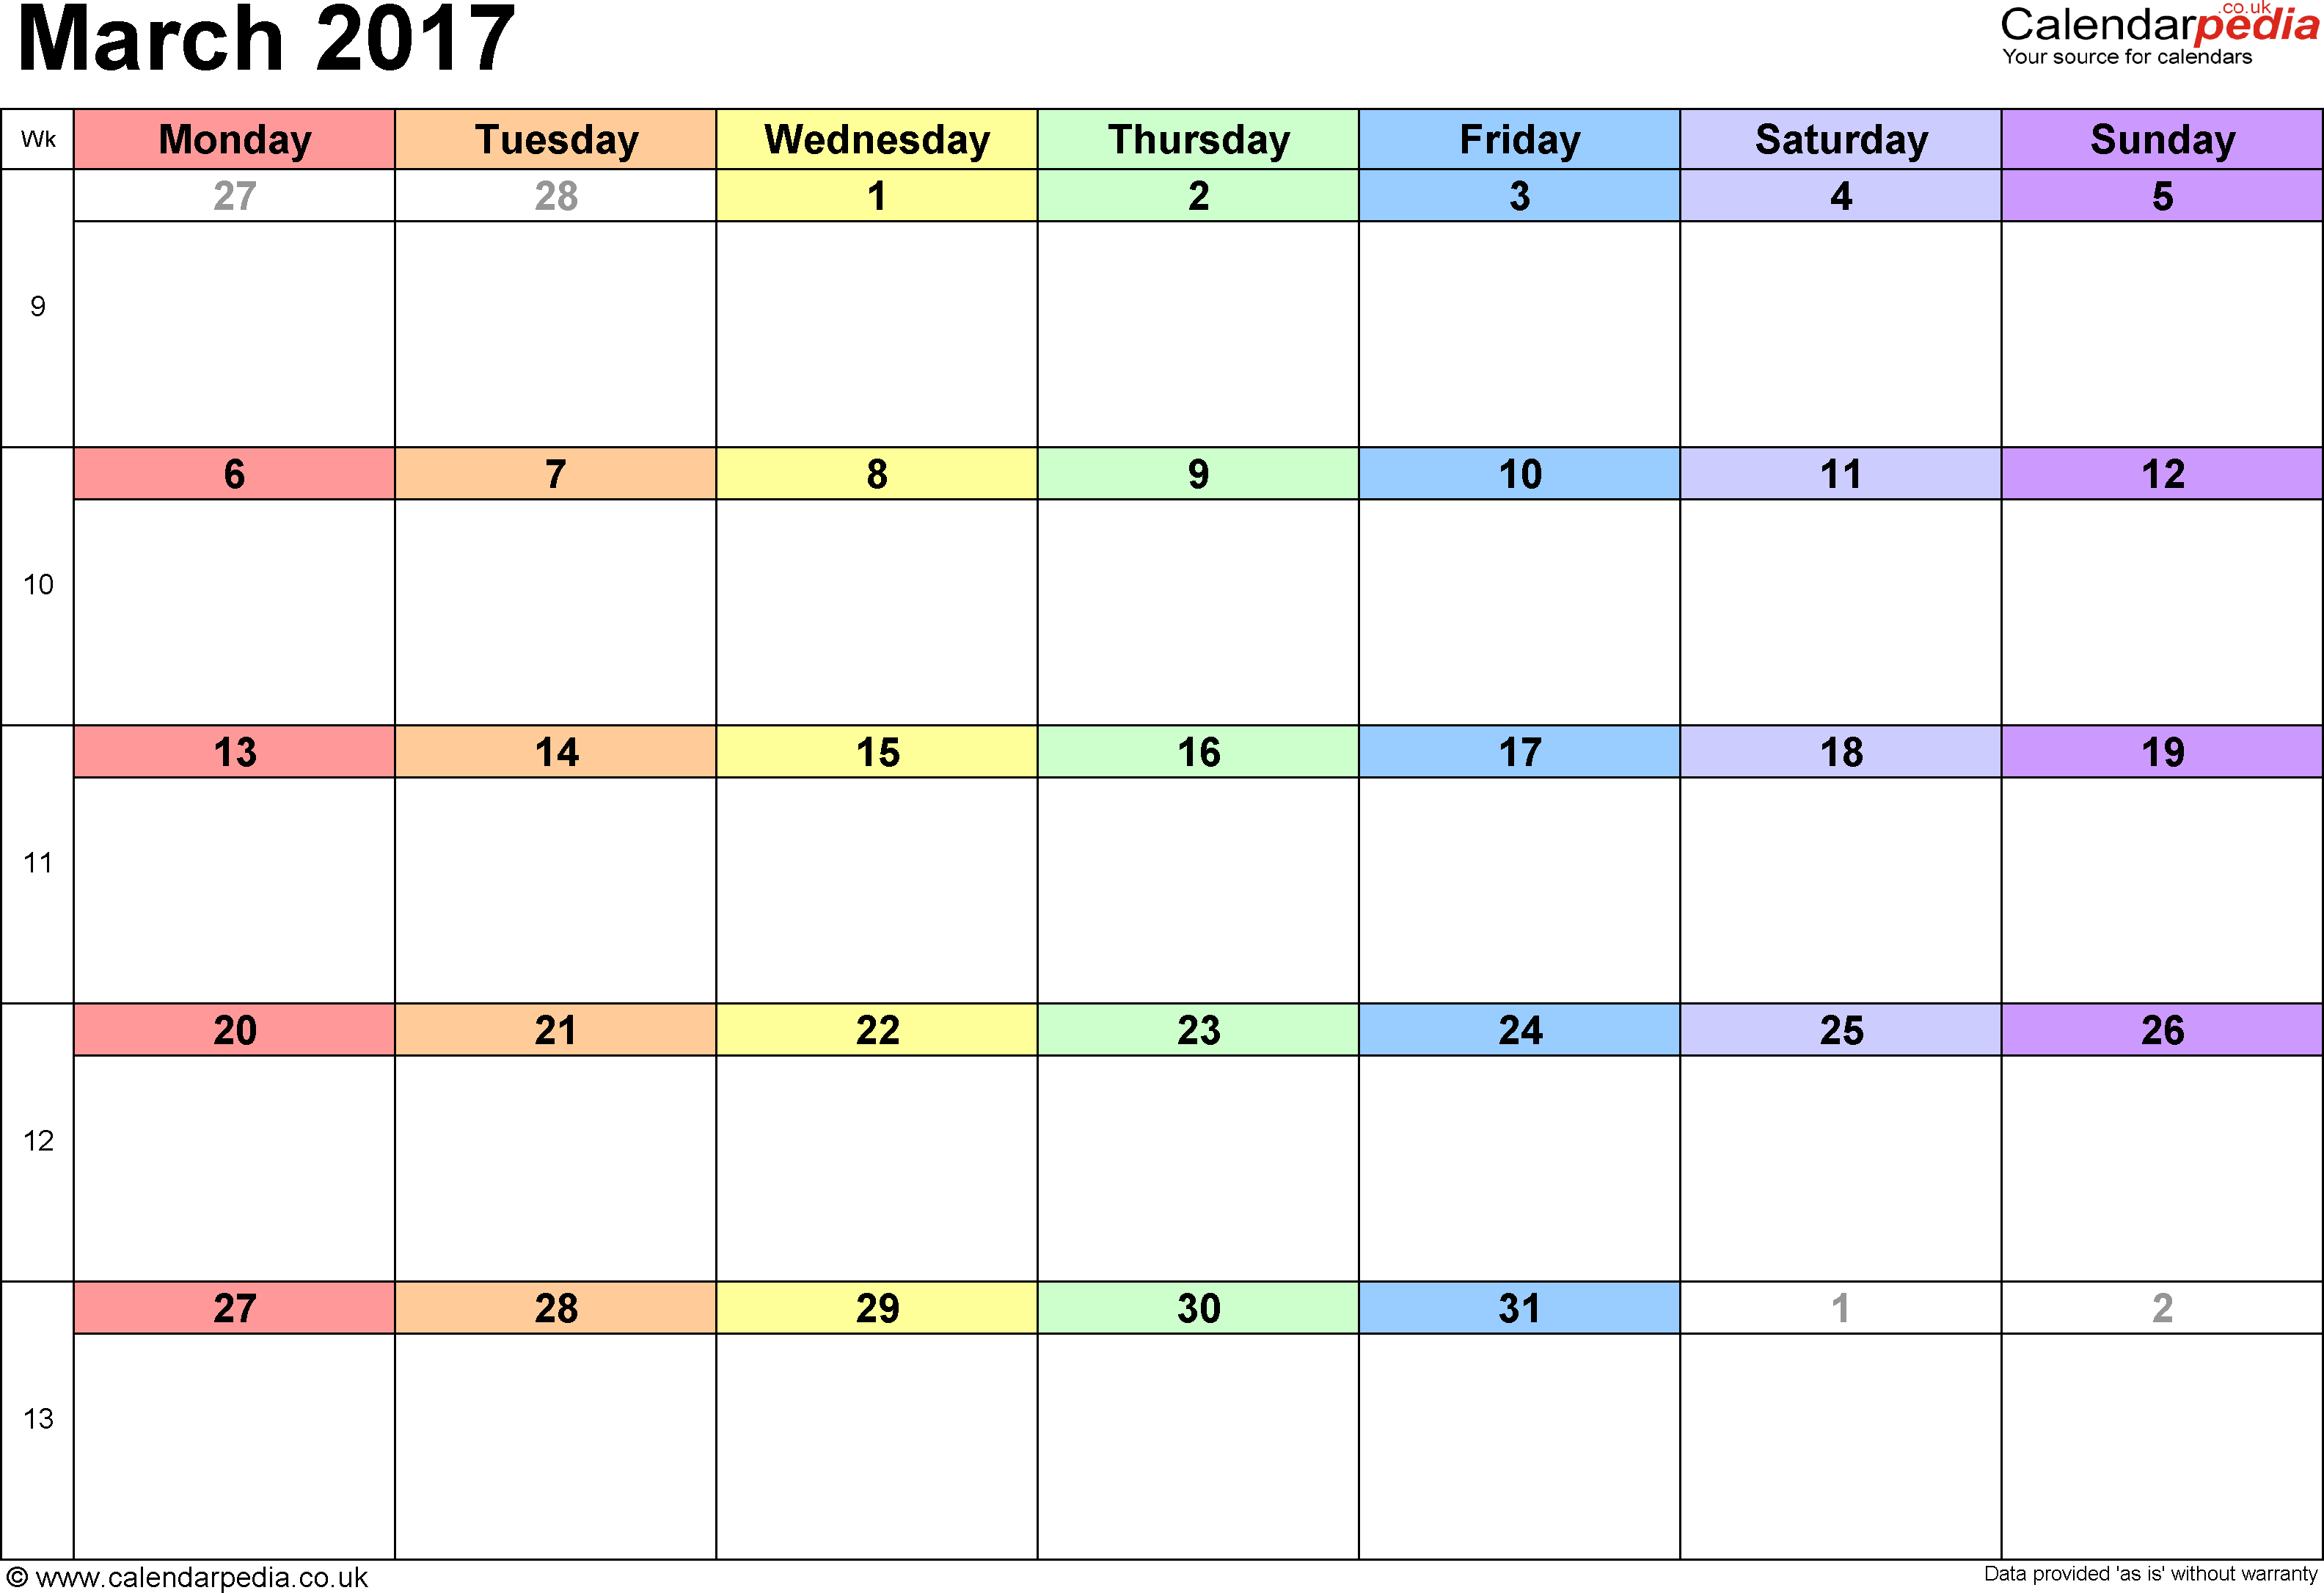 Calendar March 2017 UK, Bank Holidays, Excel/PDF/Word Templates